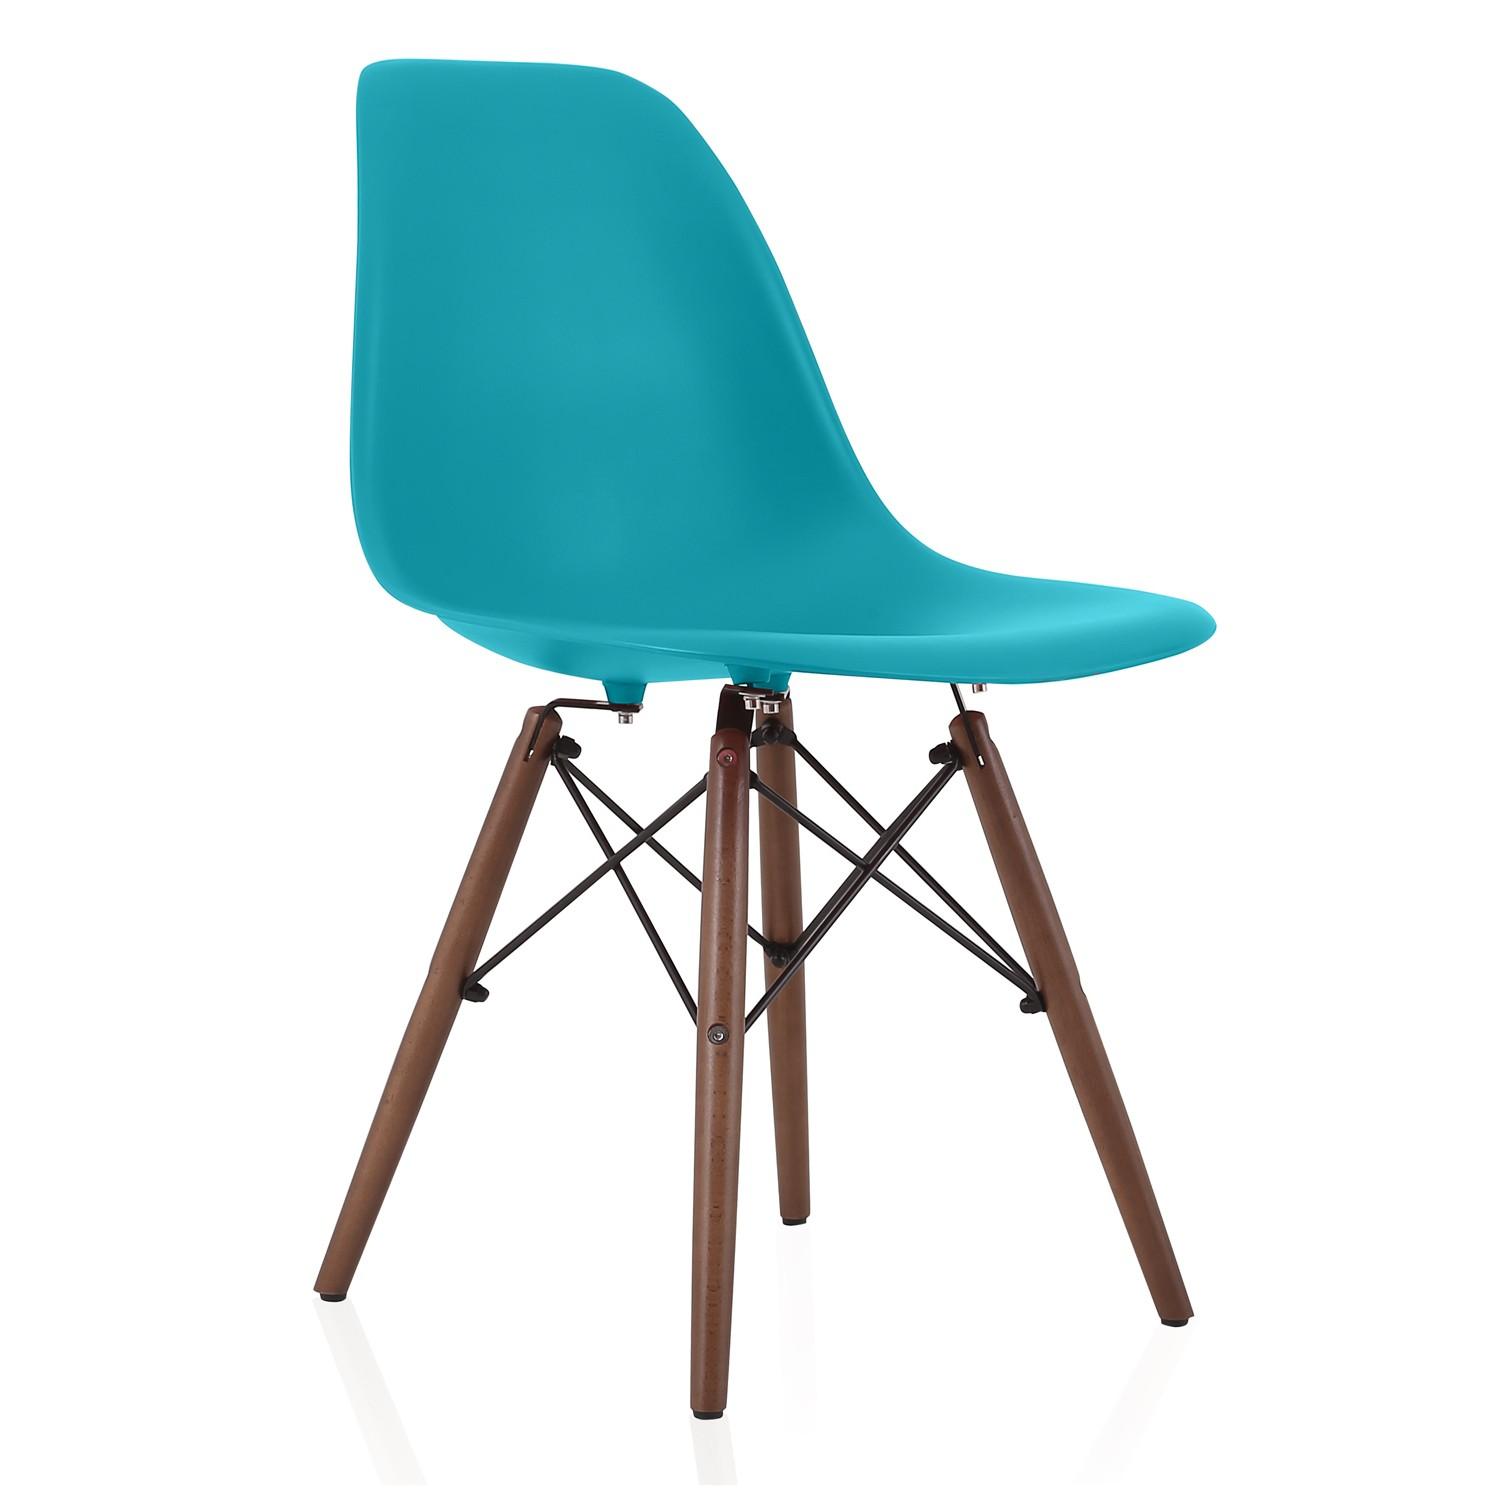 Eames Style Dining Chair Teal